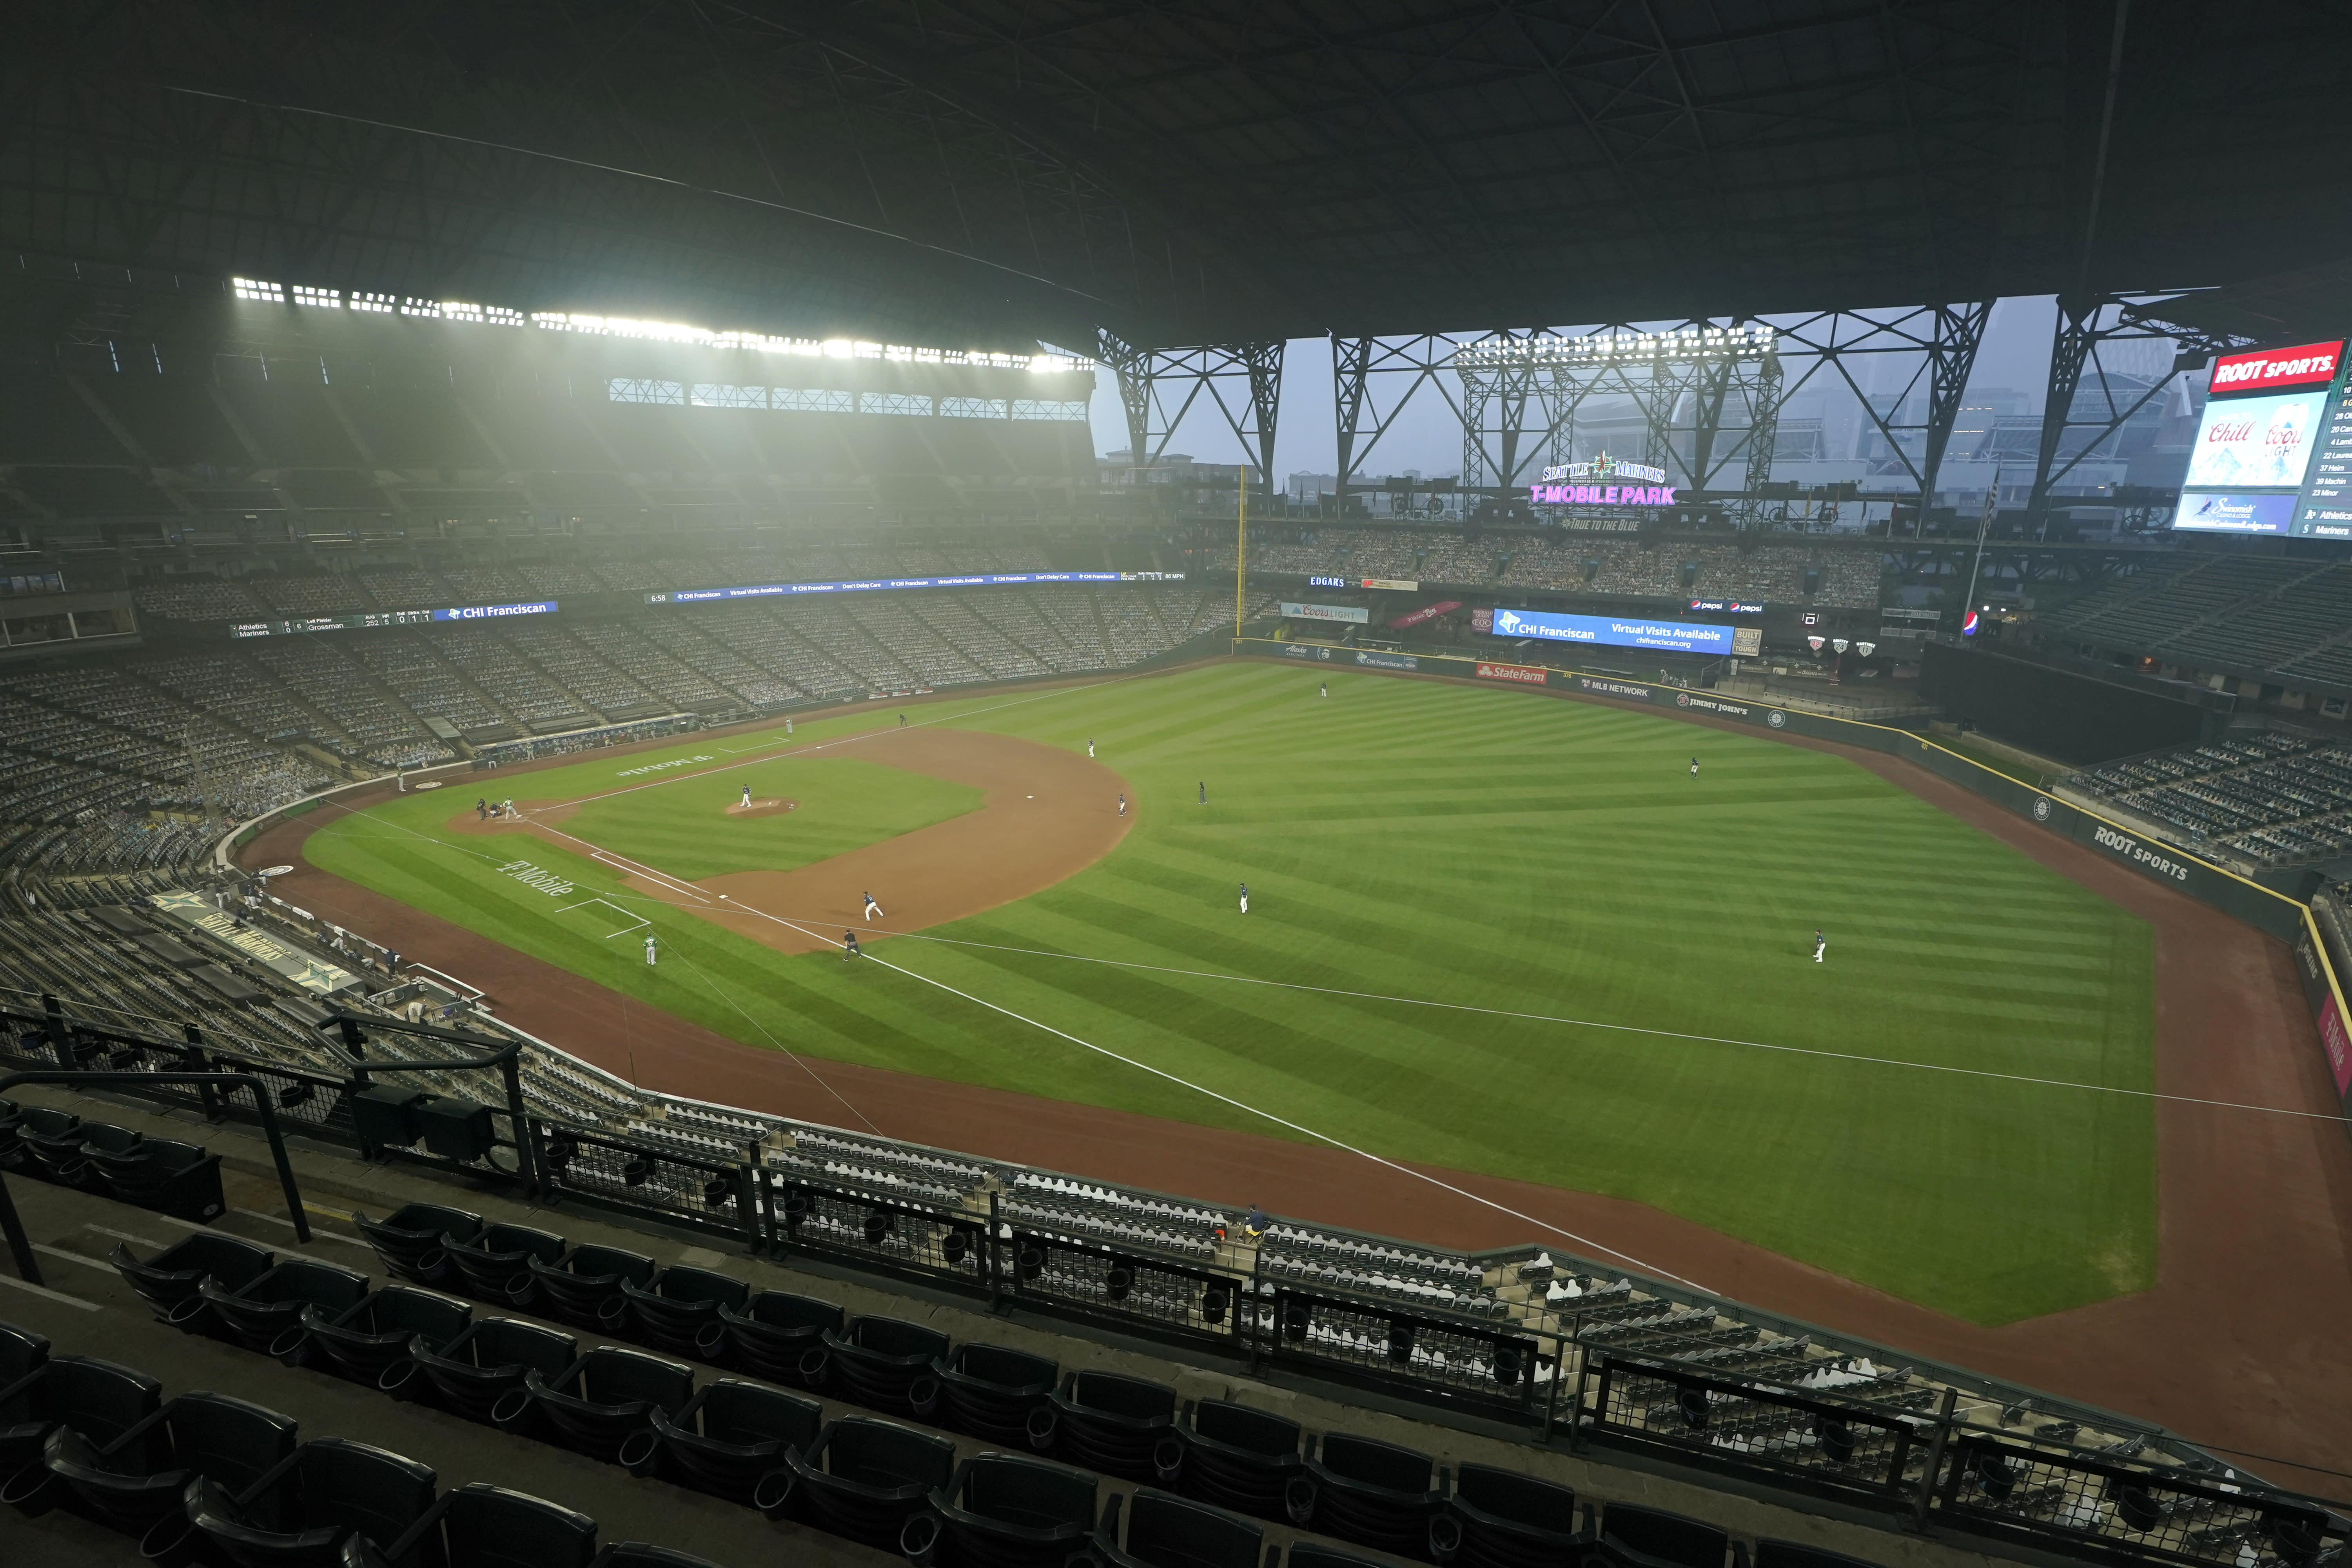 Smoke from wildfires fills the air at T-Mobile Park as the Seattle Mariners and the Oakland Athletics play with the roof extended during the sixth inning of the second baseball game of a doubleheader, Monday, Sept. 14, 2020, in Seattle. (AP Photo/Ted S. Warren)